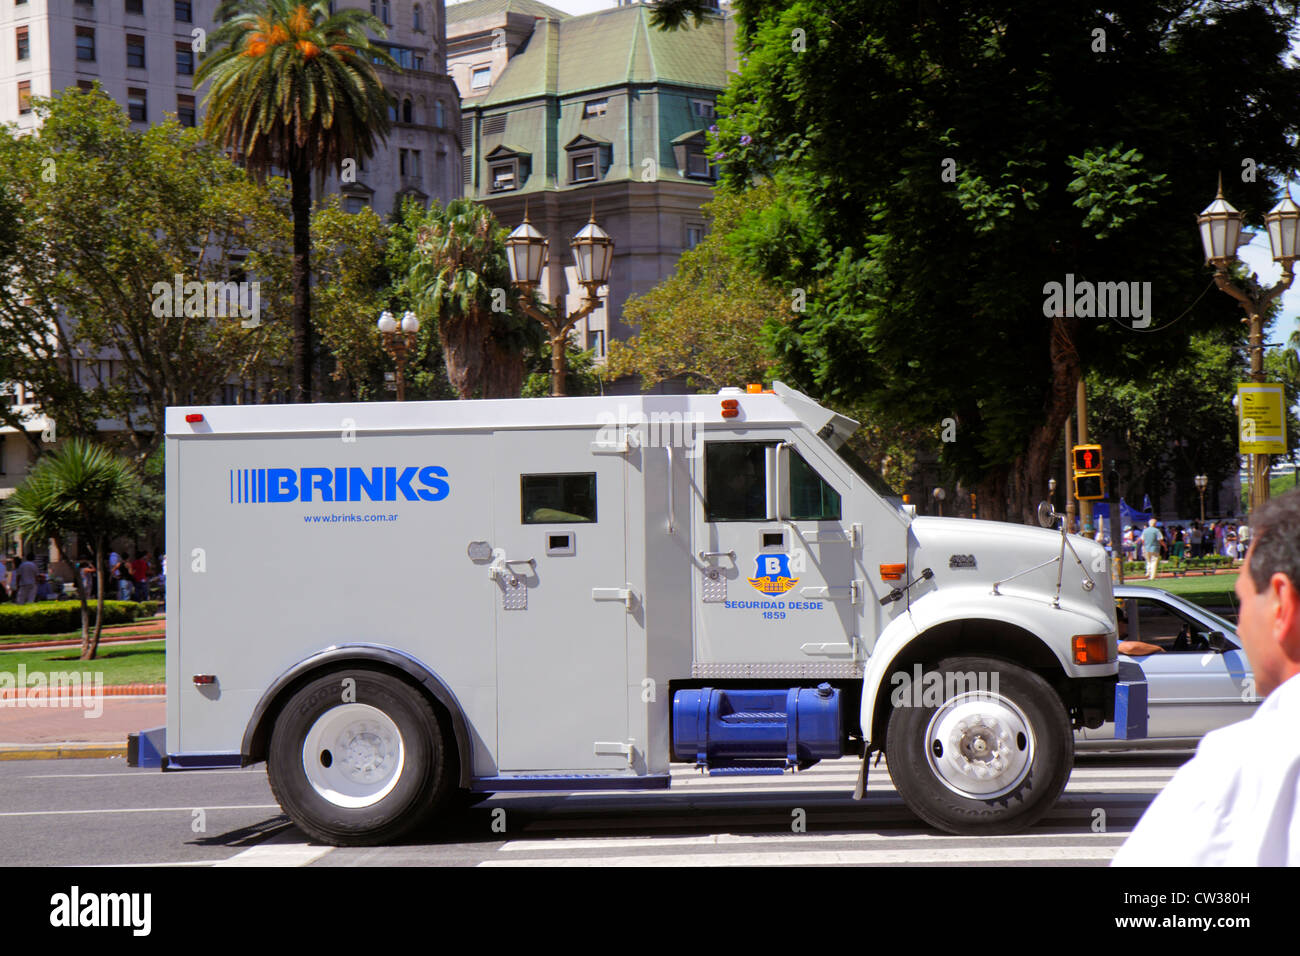 Buenos aires argentina plaza de mayo street scene brinks international company security bullet proof armored